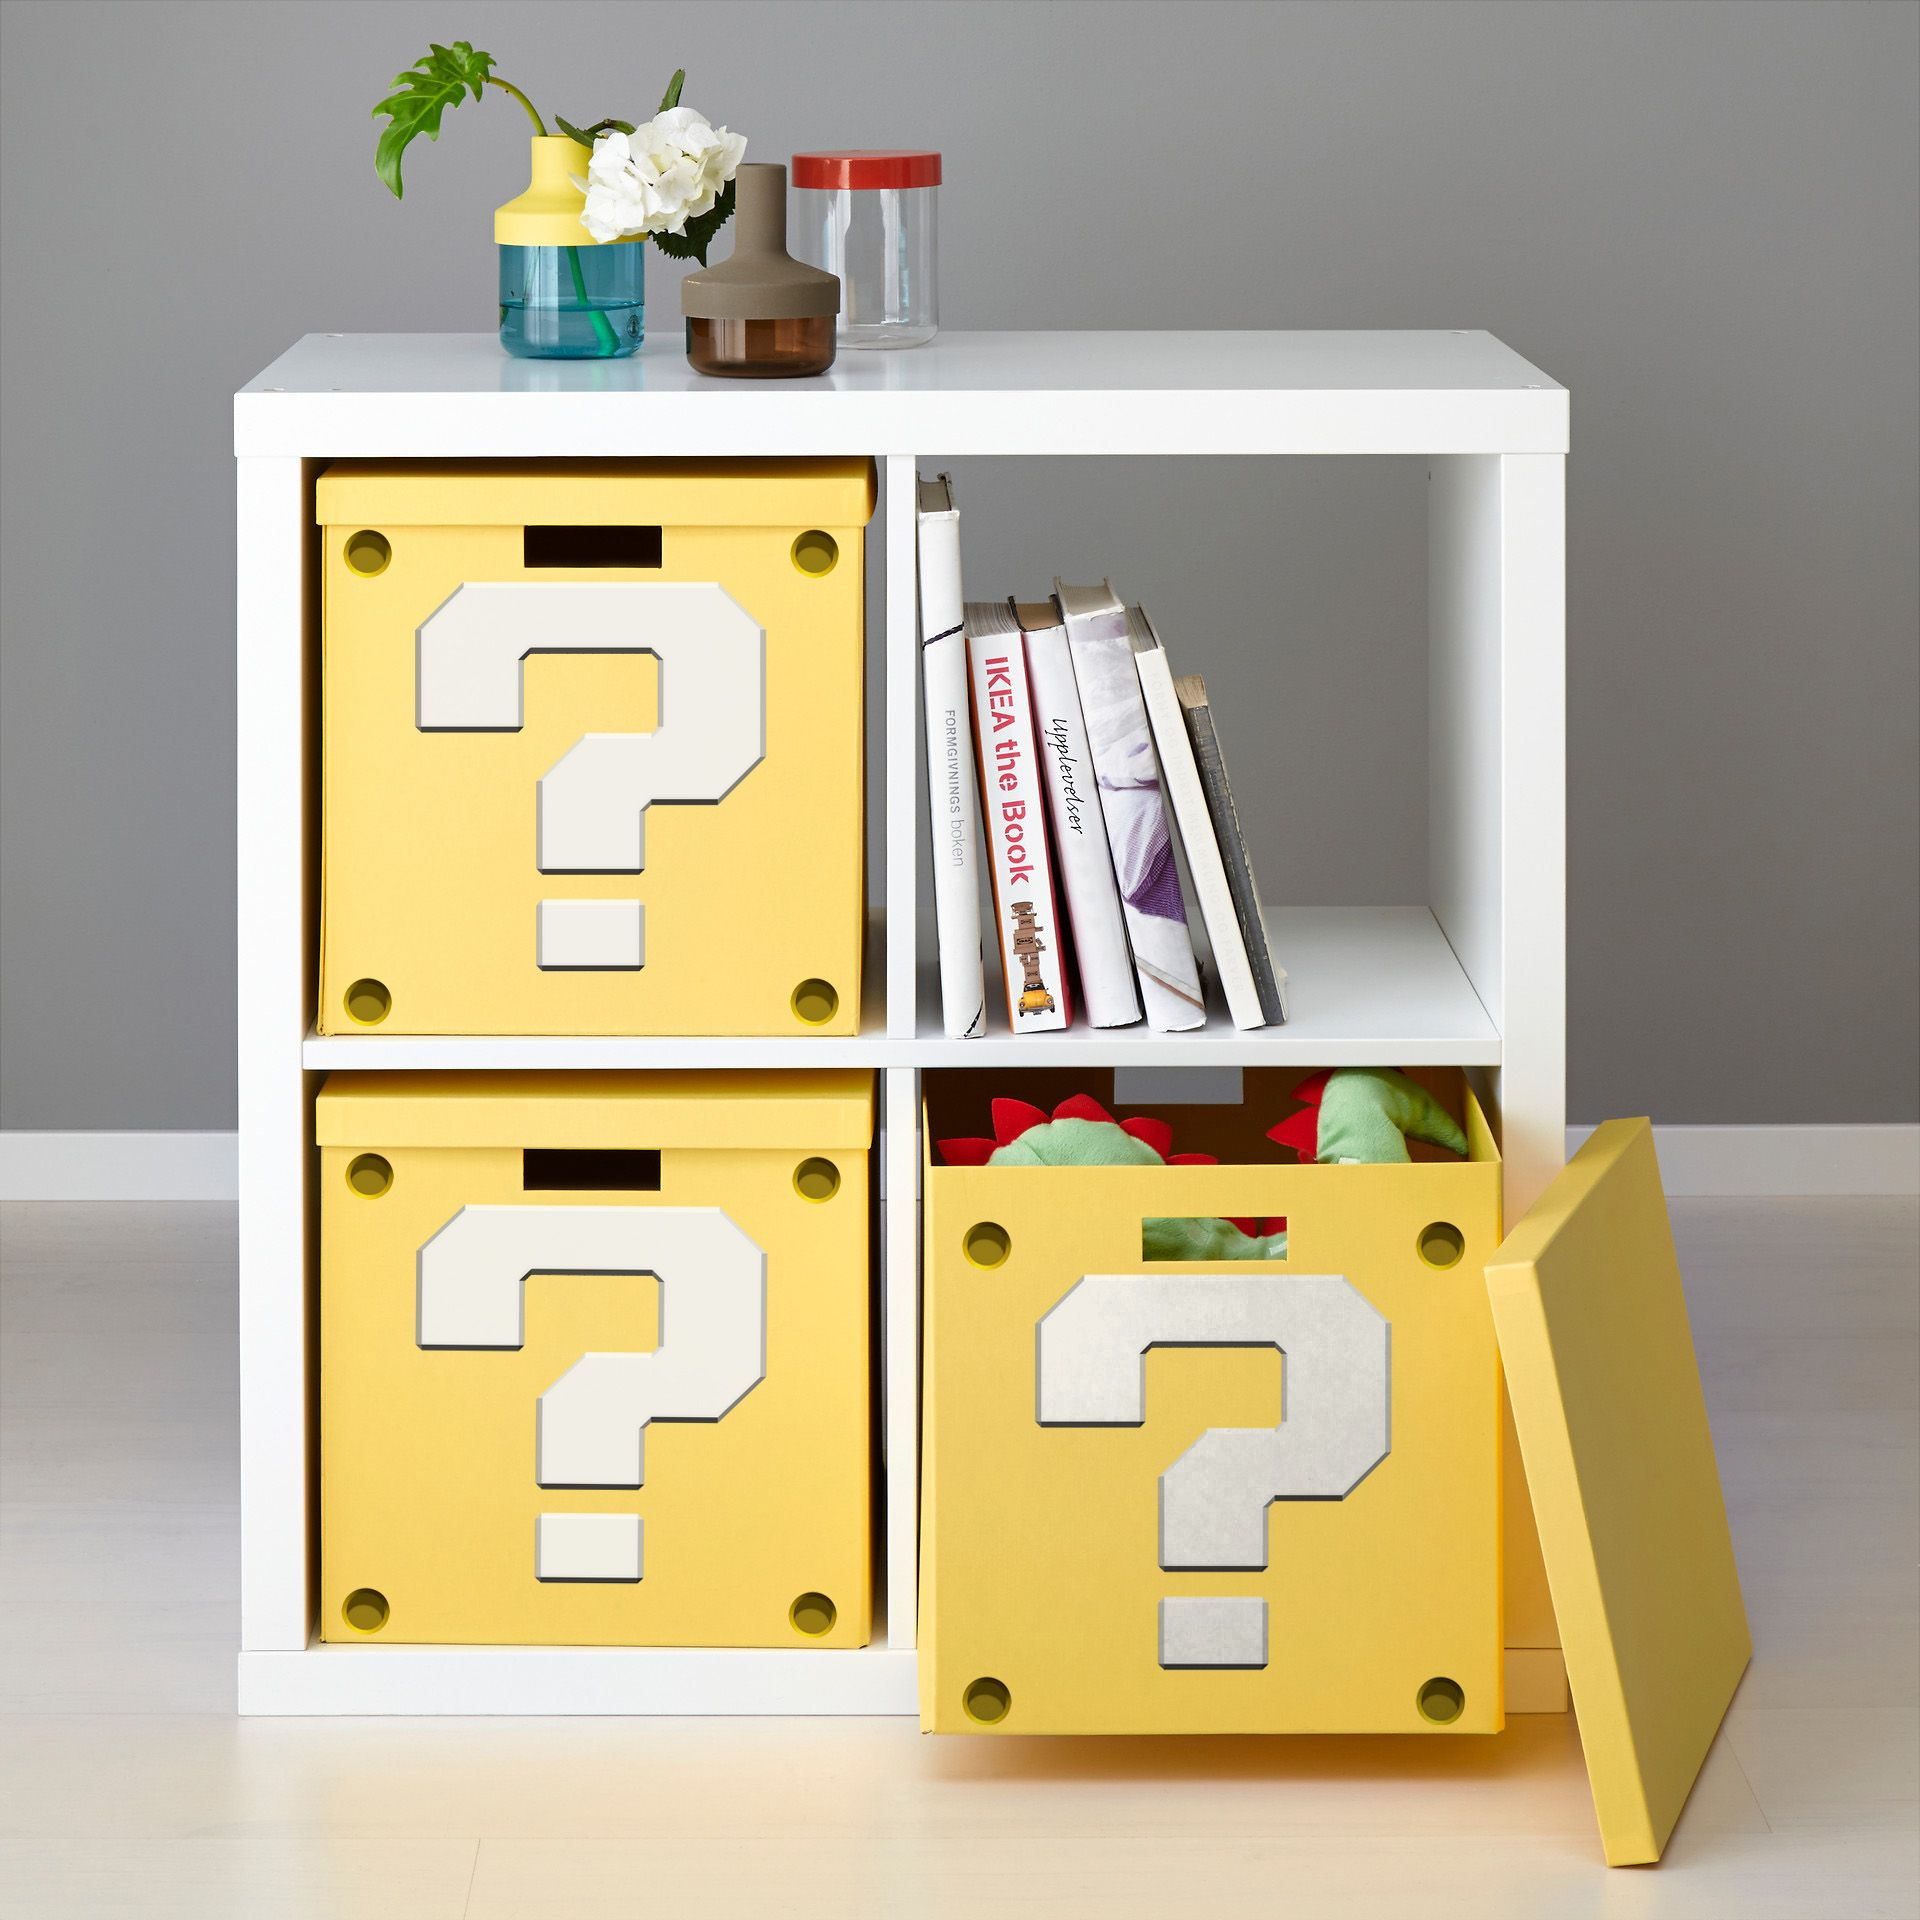 How To Make A Super Mario Question Block Shelf From Ikea Furniture  # Muebles Jugueteros Ikea